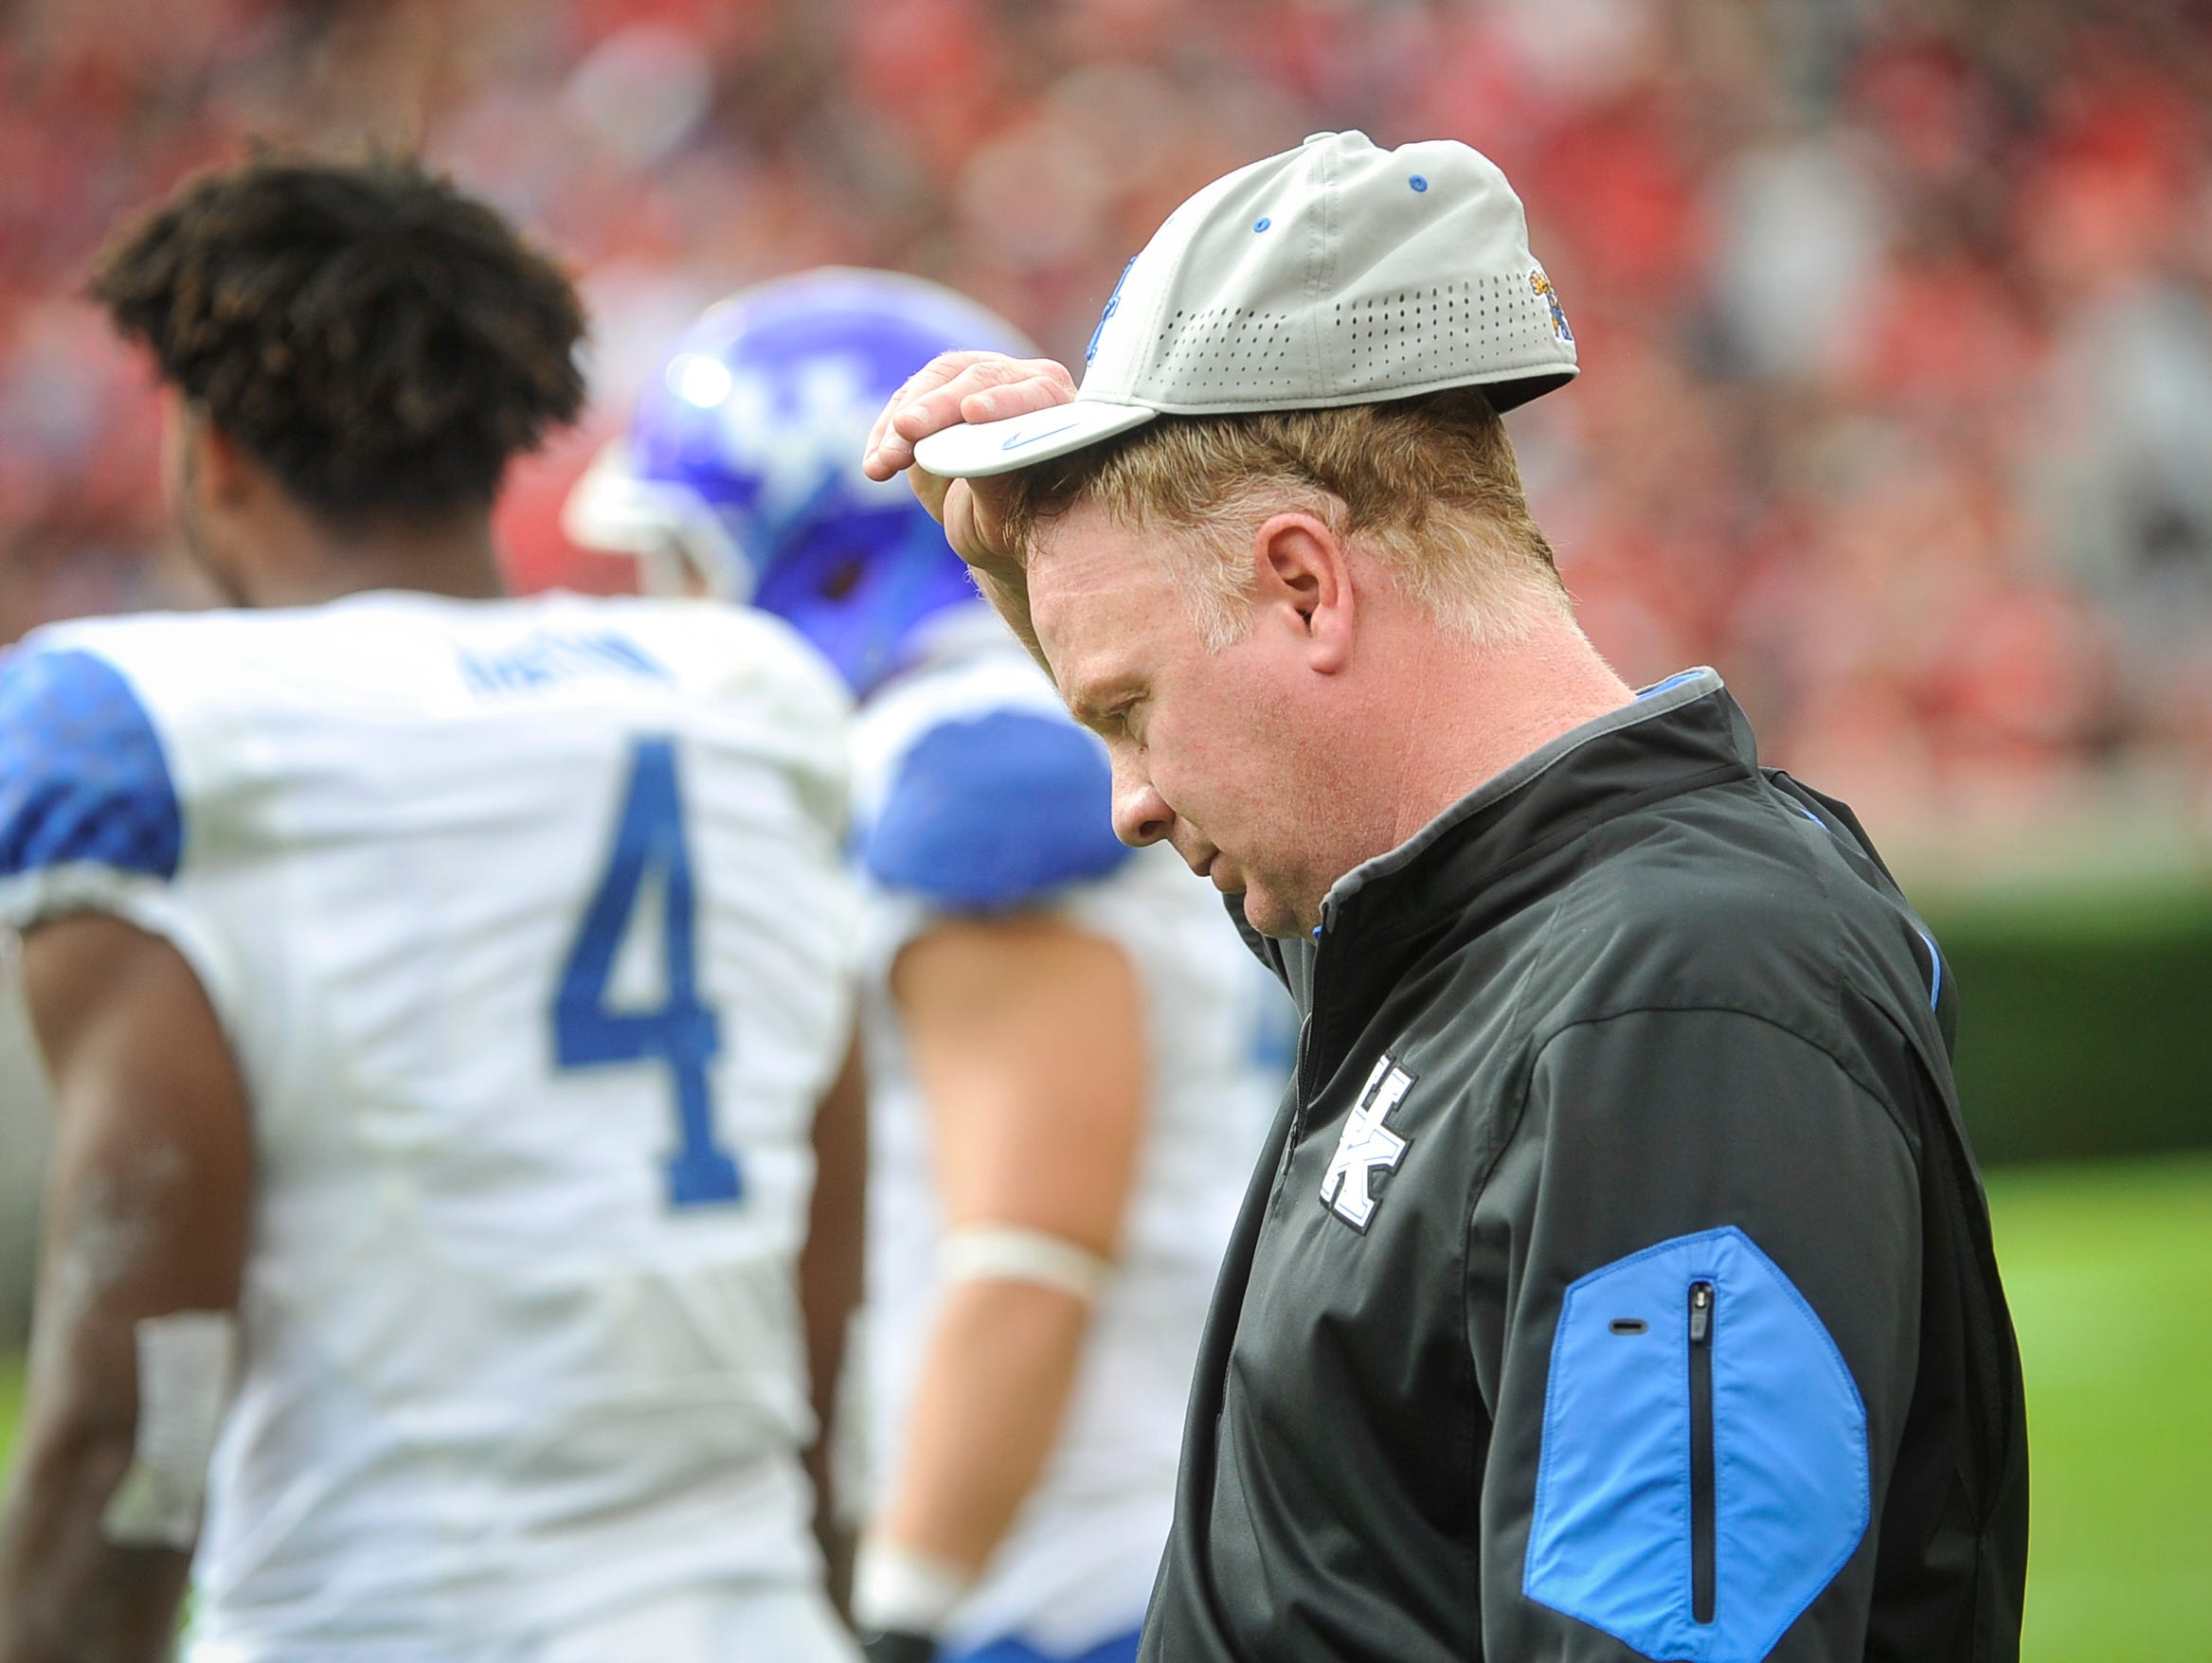 Kentucky head coach Mark Stoops works the sideline during the second half of an NCAA college football game, Saturday, Nov. 7, 2015, in Athens, Ga. Georgia won 27-3.